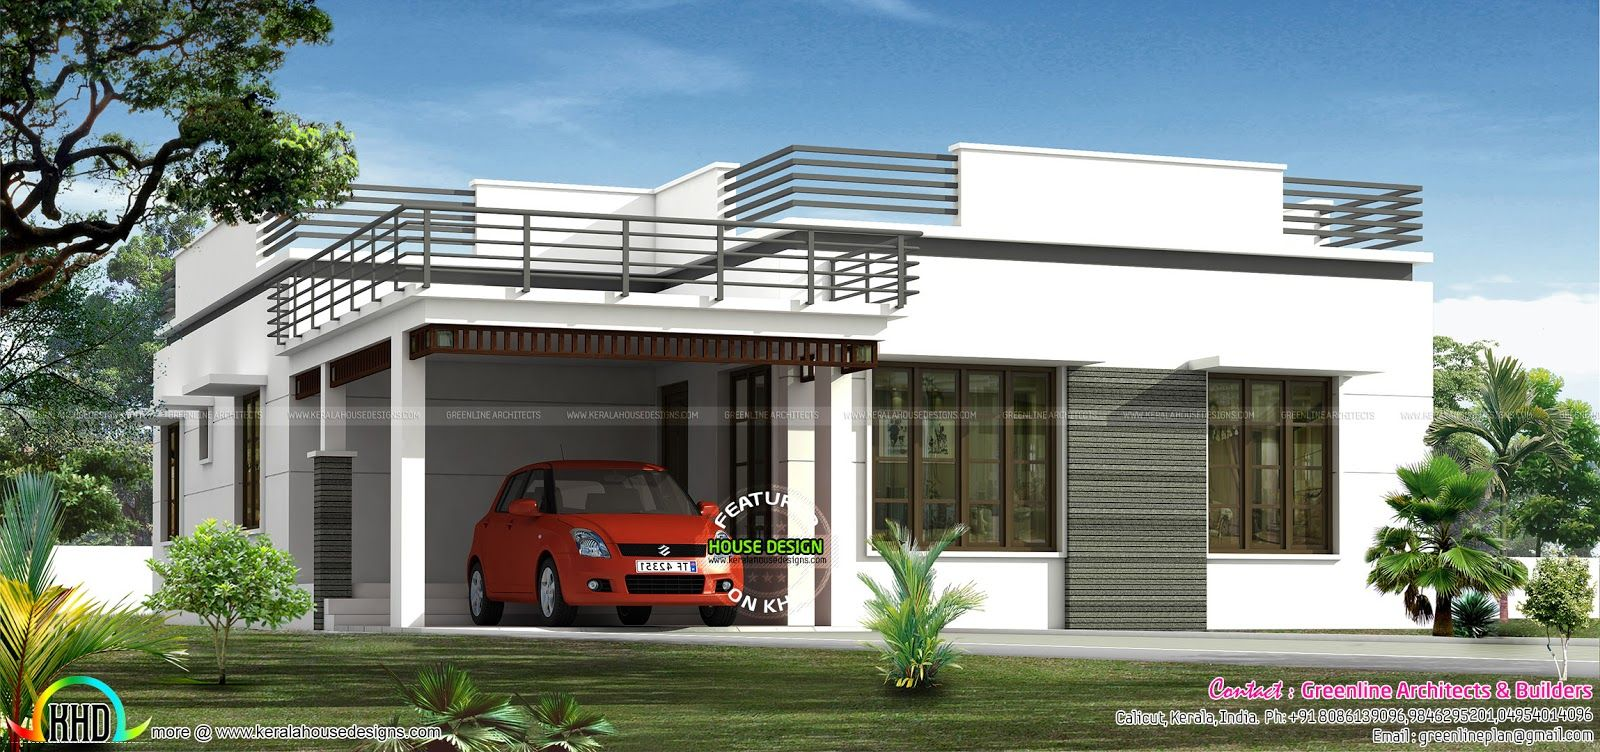 single-floor-flat-roof.jpg (1600×752) | my | Pinterest | Flat roof on butterfly roof house designs, green roof house designs, 4-bedroom bungalow house designs, architect house designs, skillion roof house designs, tile roof house designs, construction house designs, gambrel roof house designs, modern house roof designs, luxury house designs, architecture modern house designs, hipped roof house designs, landscaping house designs, gable roof house designs, remodeling house designs, flat houses design model, types of house roof designs, 2015 house designs, pitched roof house designs, indian house designs,